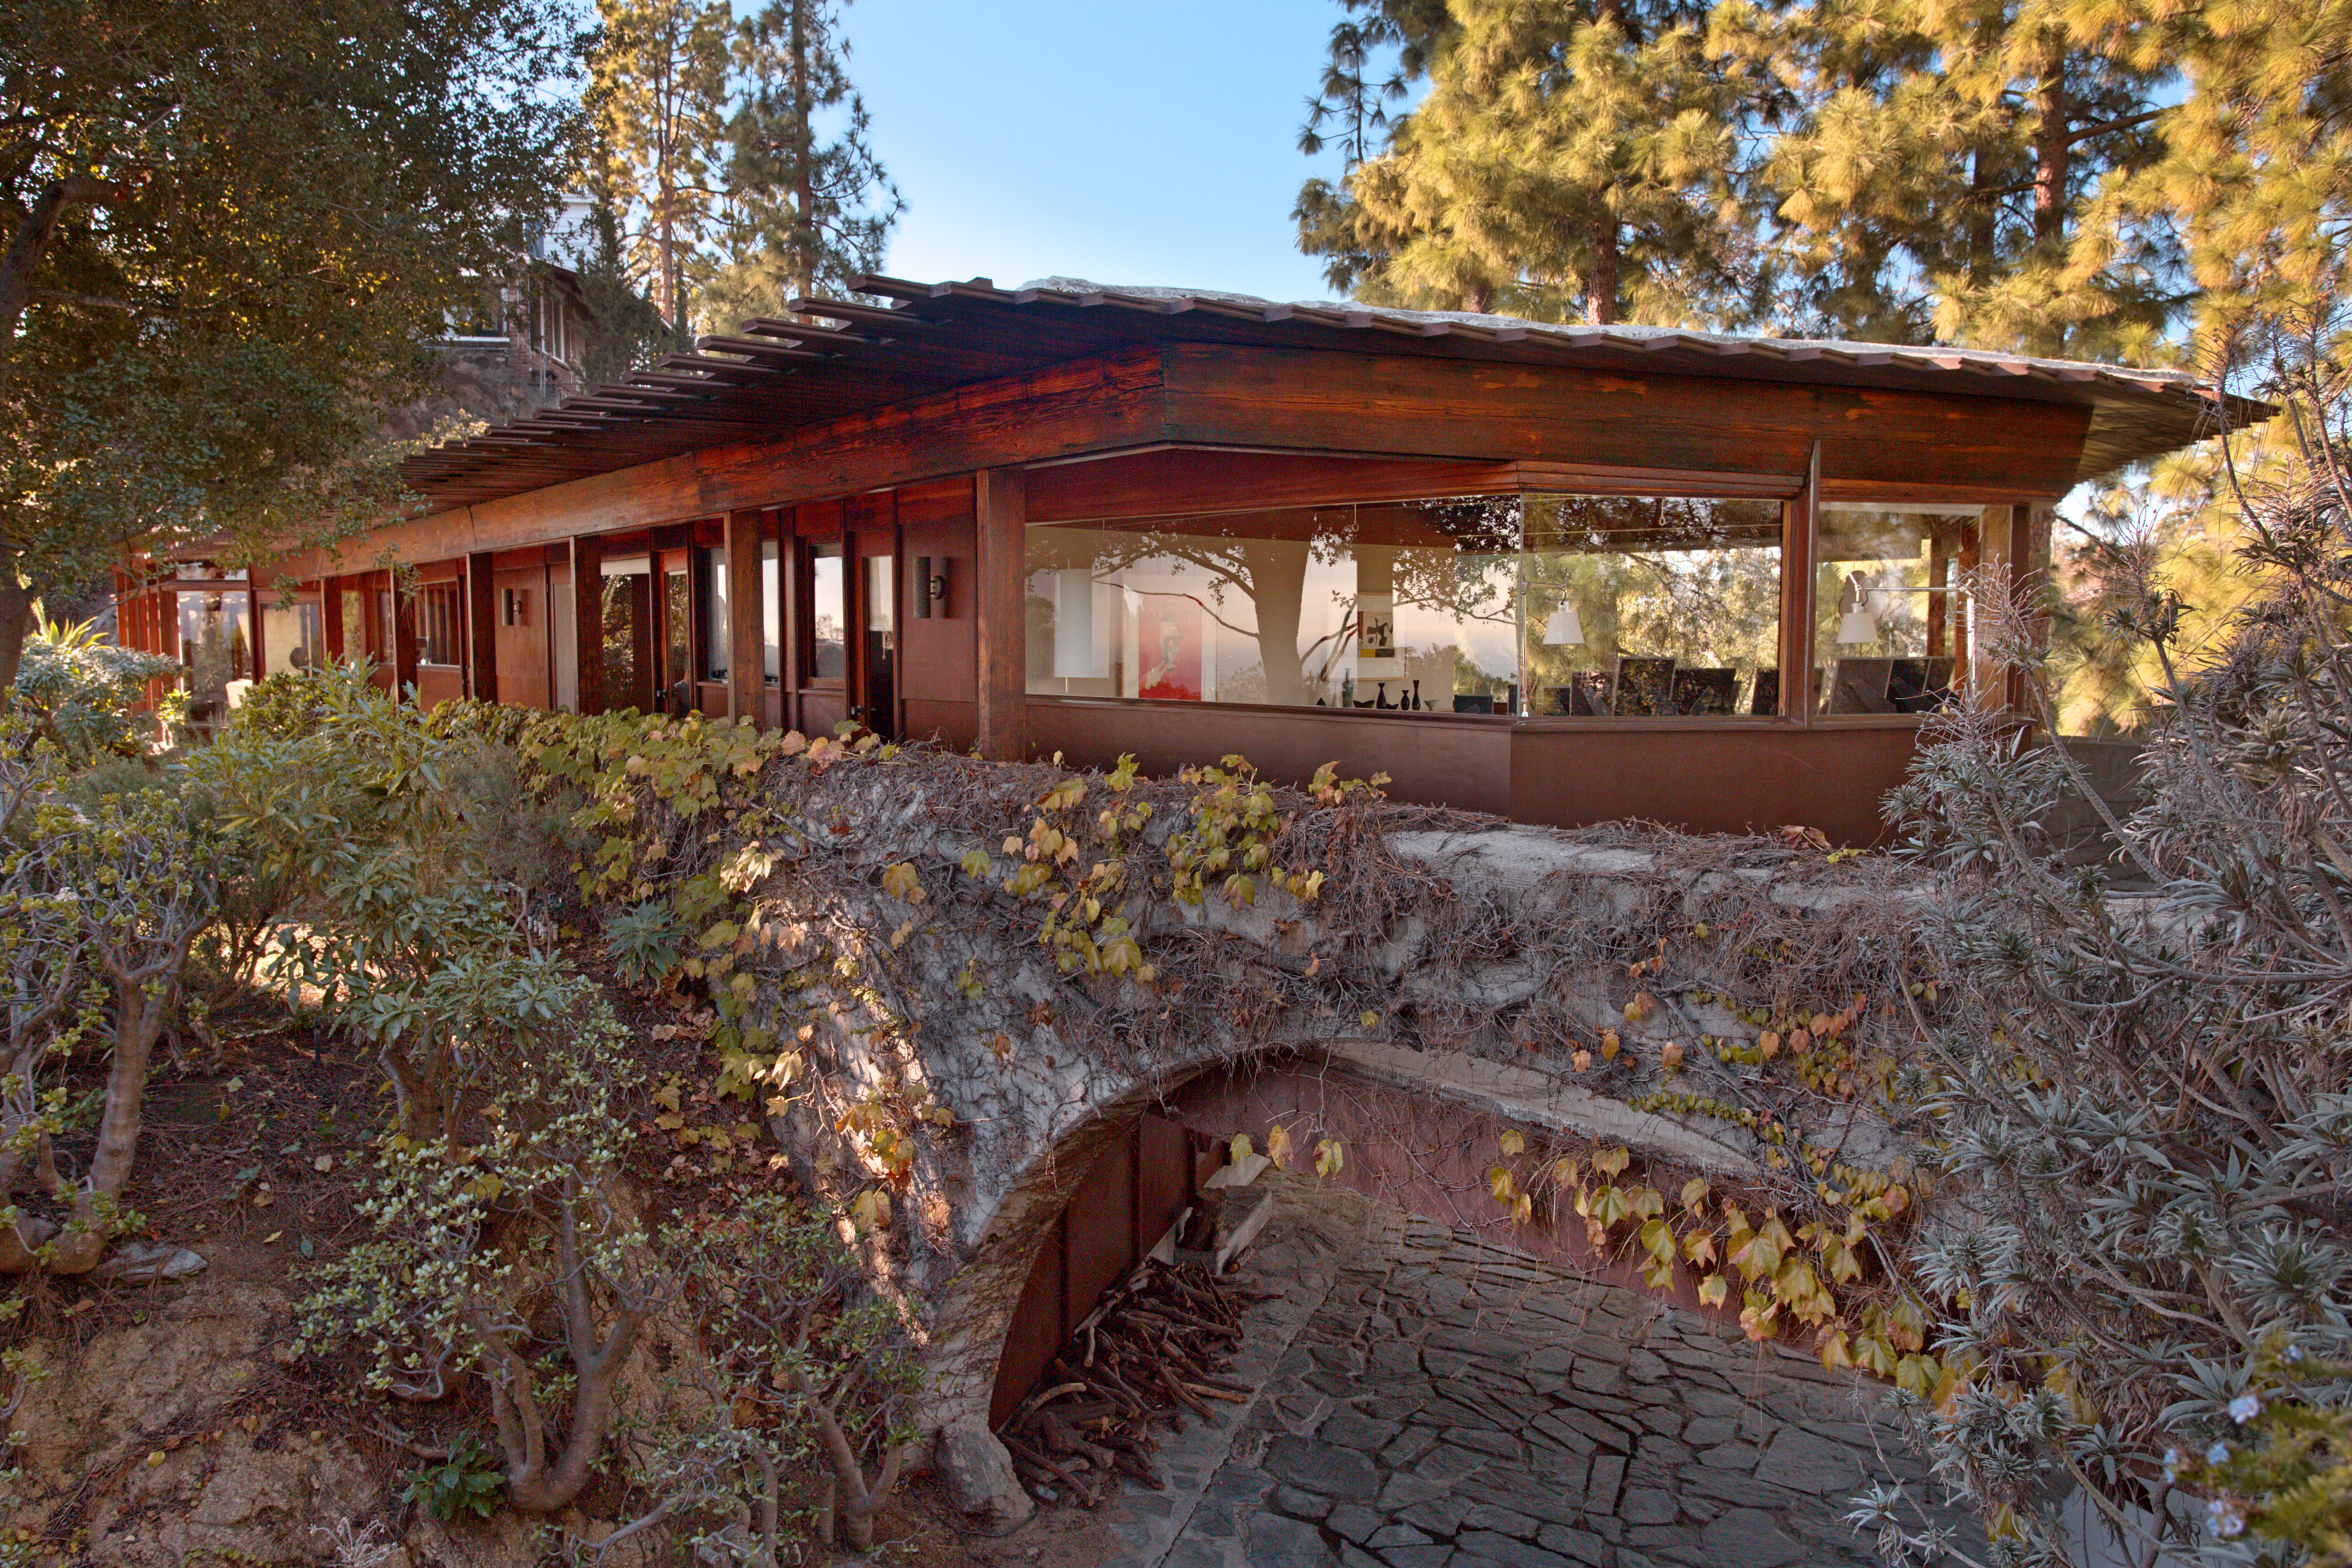 Dramatic midcentury modern by Lloyd Wright in the Hollywood Hills asking $2.5M